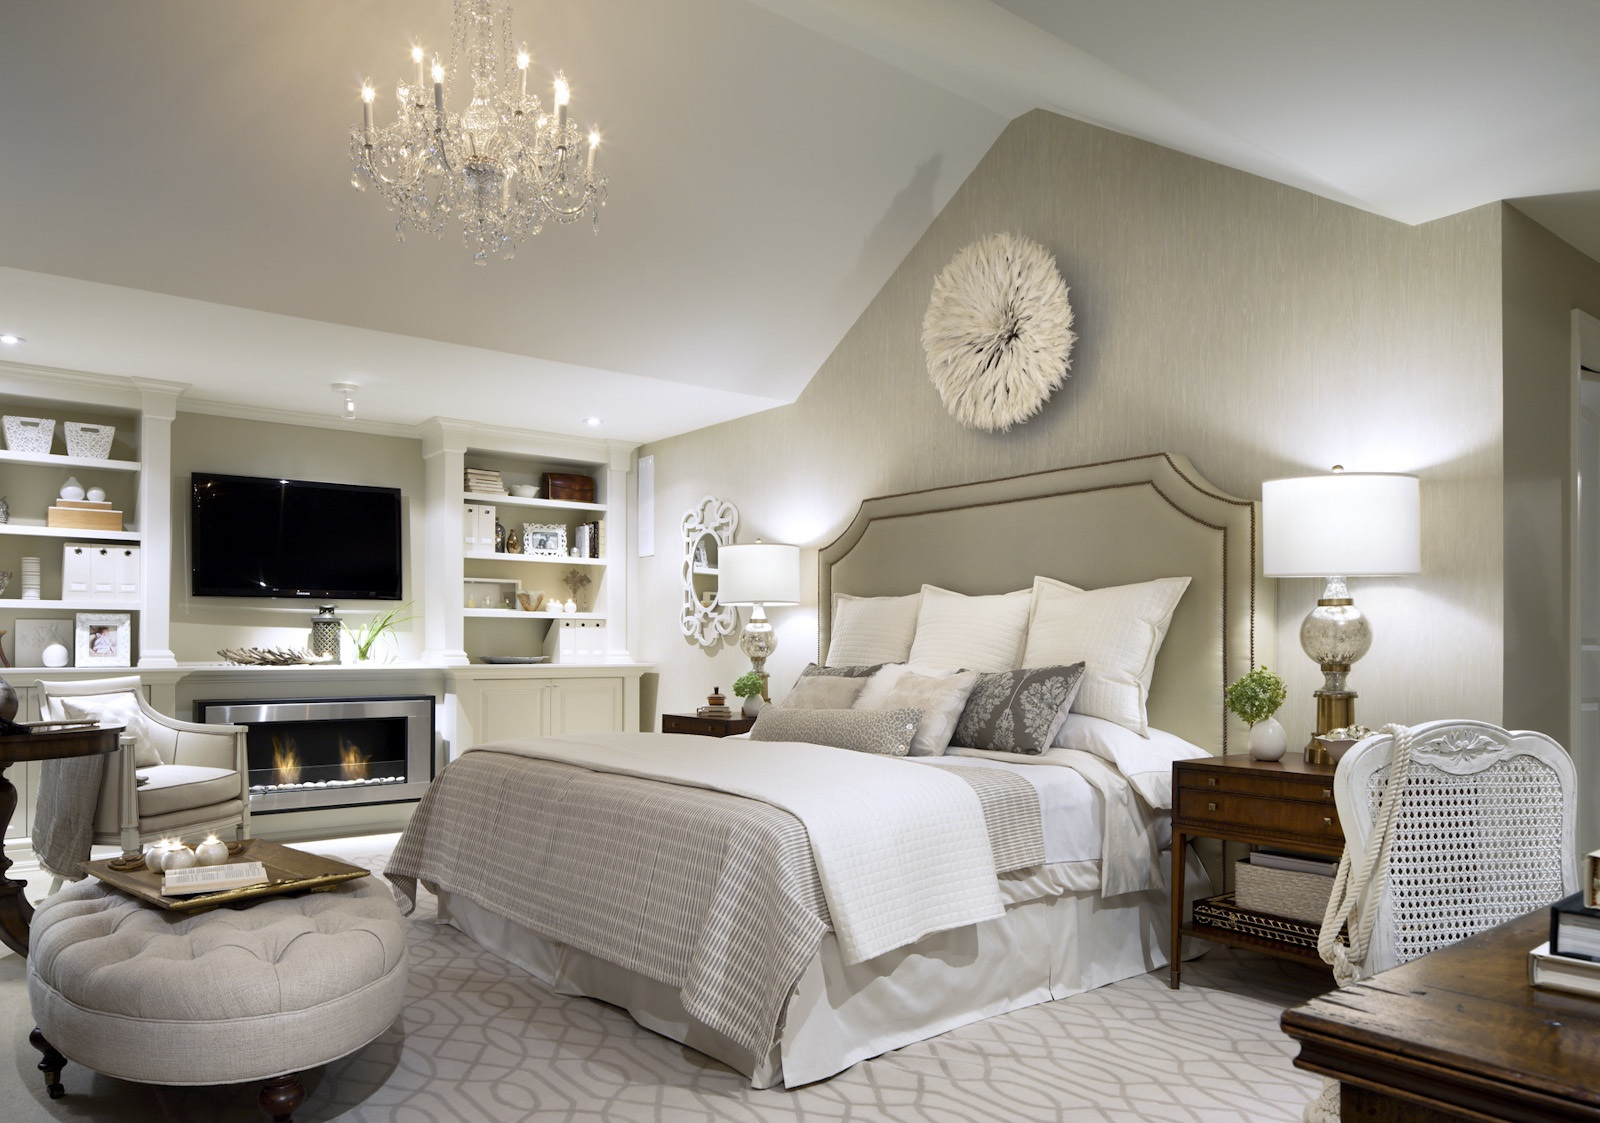 Small bedroom chandeliers